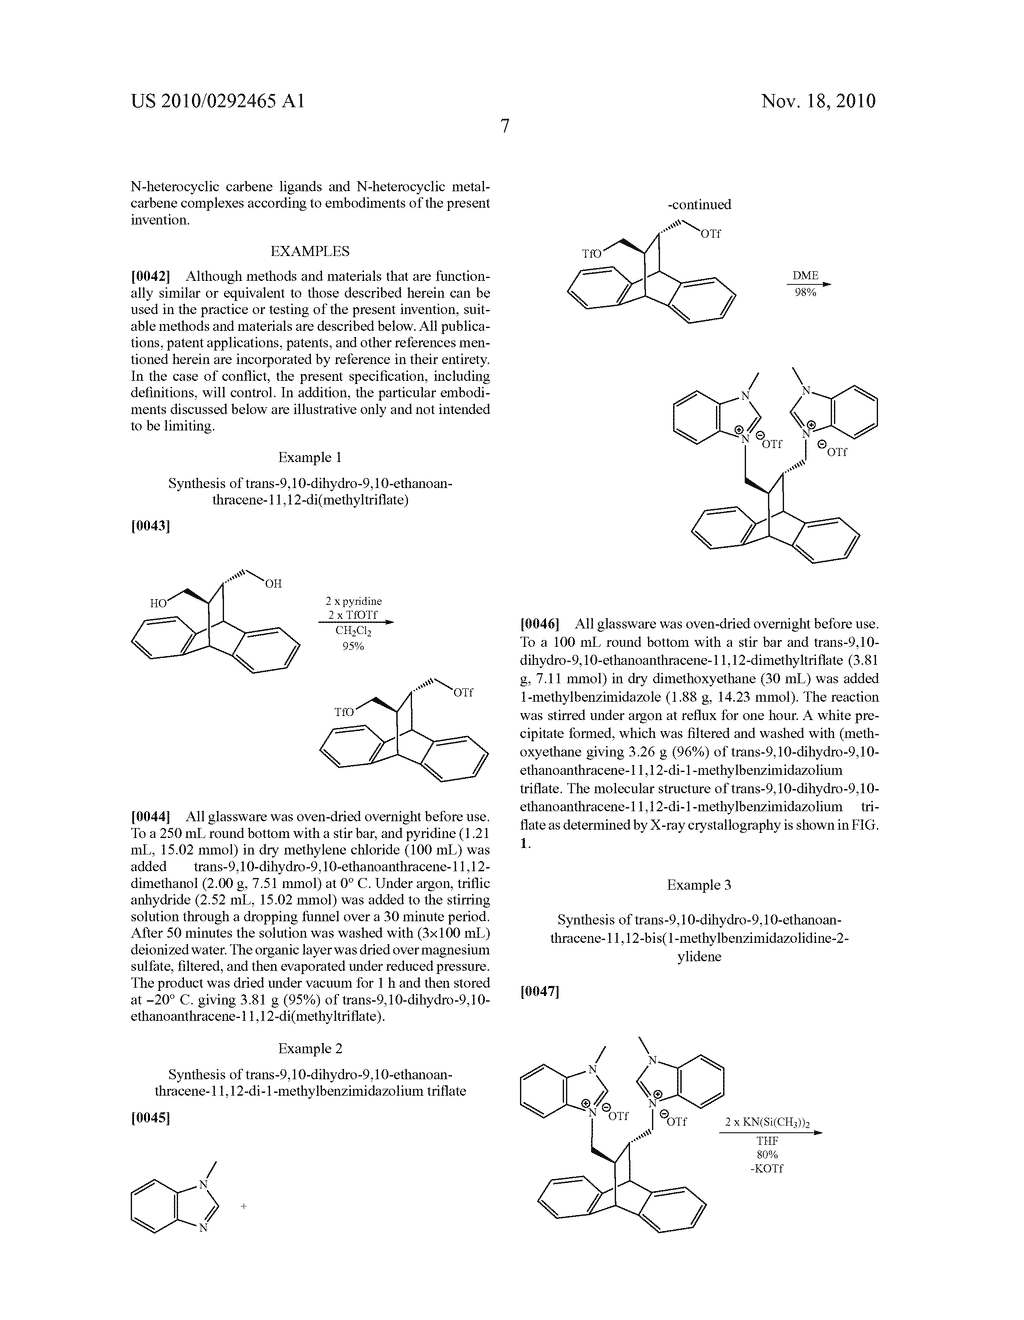 CATALYSTS CONTAINING N-HETEROCYCLIC CARBENES FOR ENANTIOSELECTIVE SYNTHESIS - diagram, schematic, and image 12